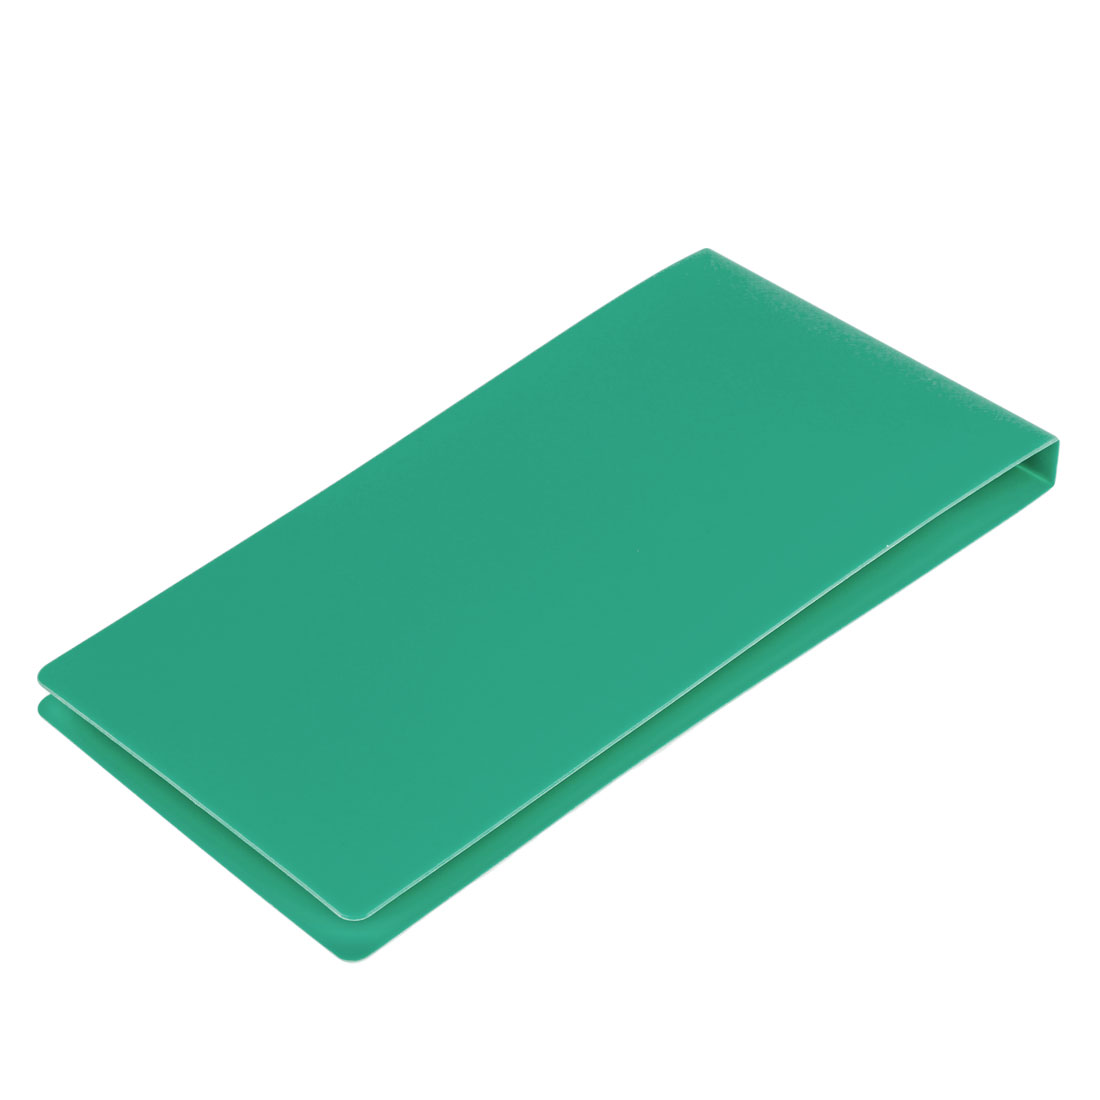 Office School Green Plastic Cover A5 Paper Document Invoice Bill Folder